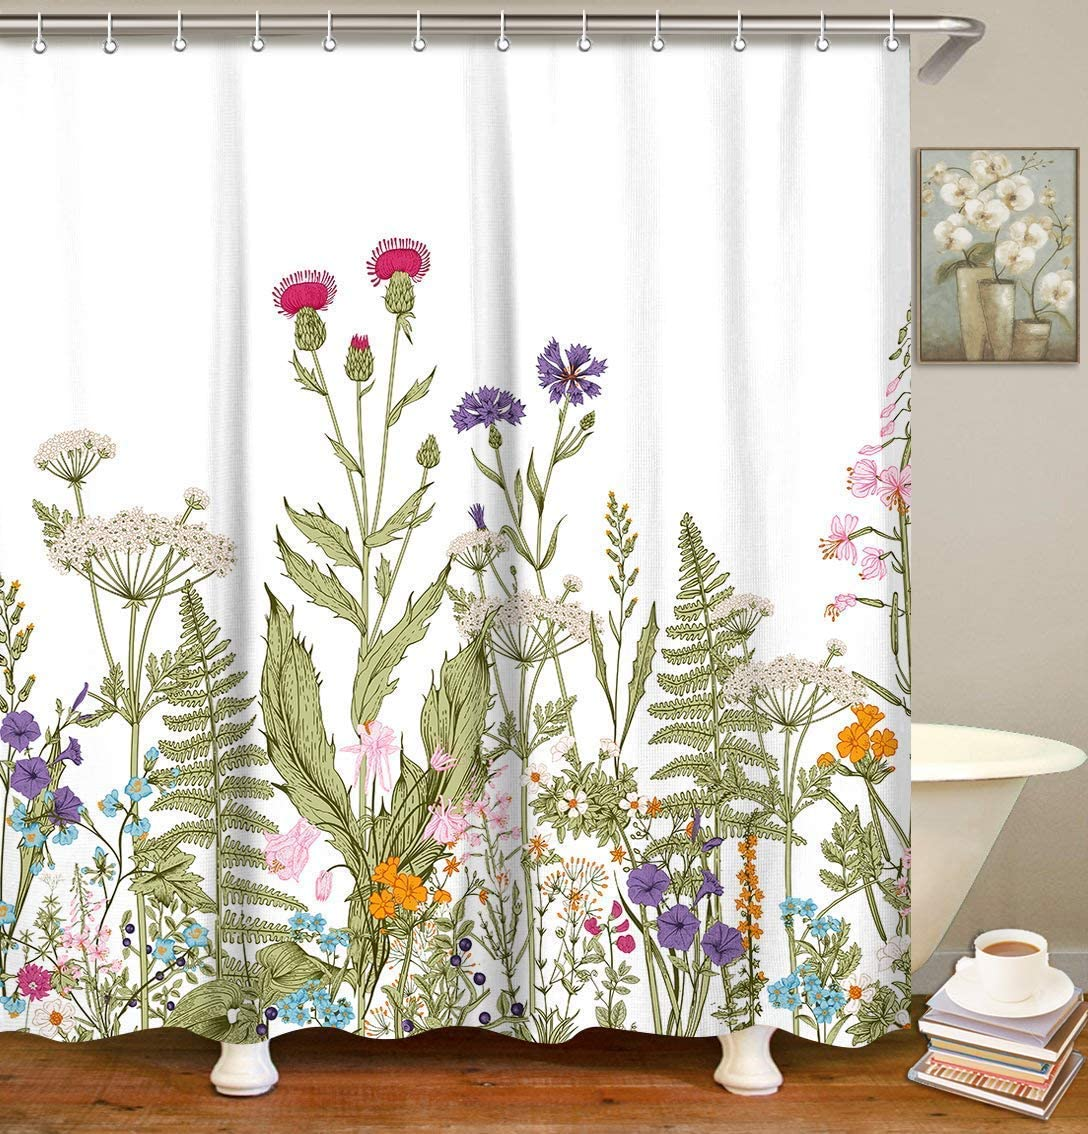 "LIVILAN Botanical Shower Curtain Green Floral with Plant Shower Curtain Vintage Herbs Wild Flowers Bath Curtains Set with Hooks Colorful Flowers Bathroom Decor,70.8"" X 83.8"""